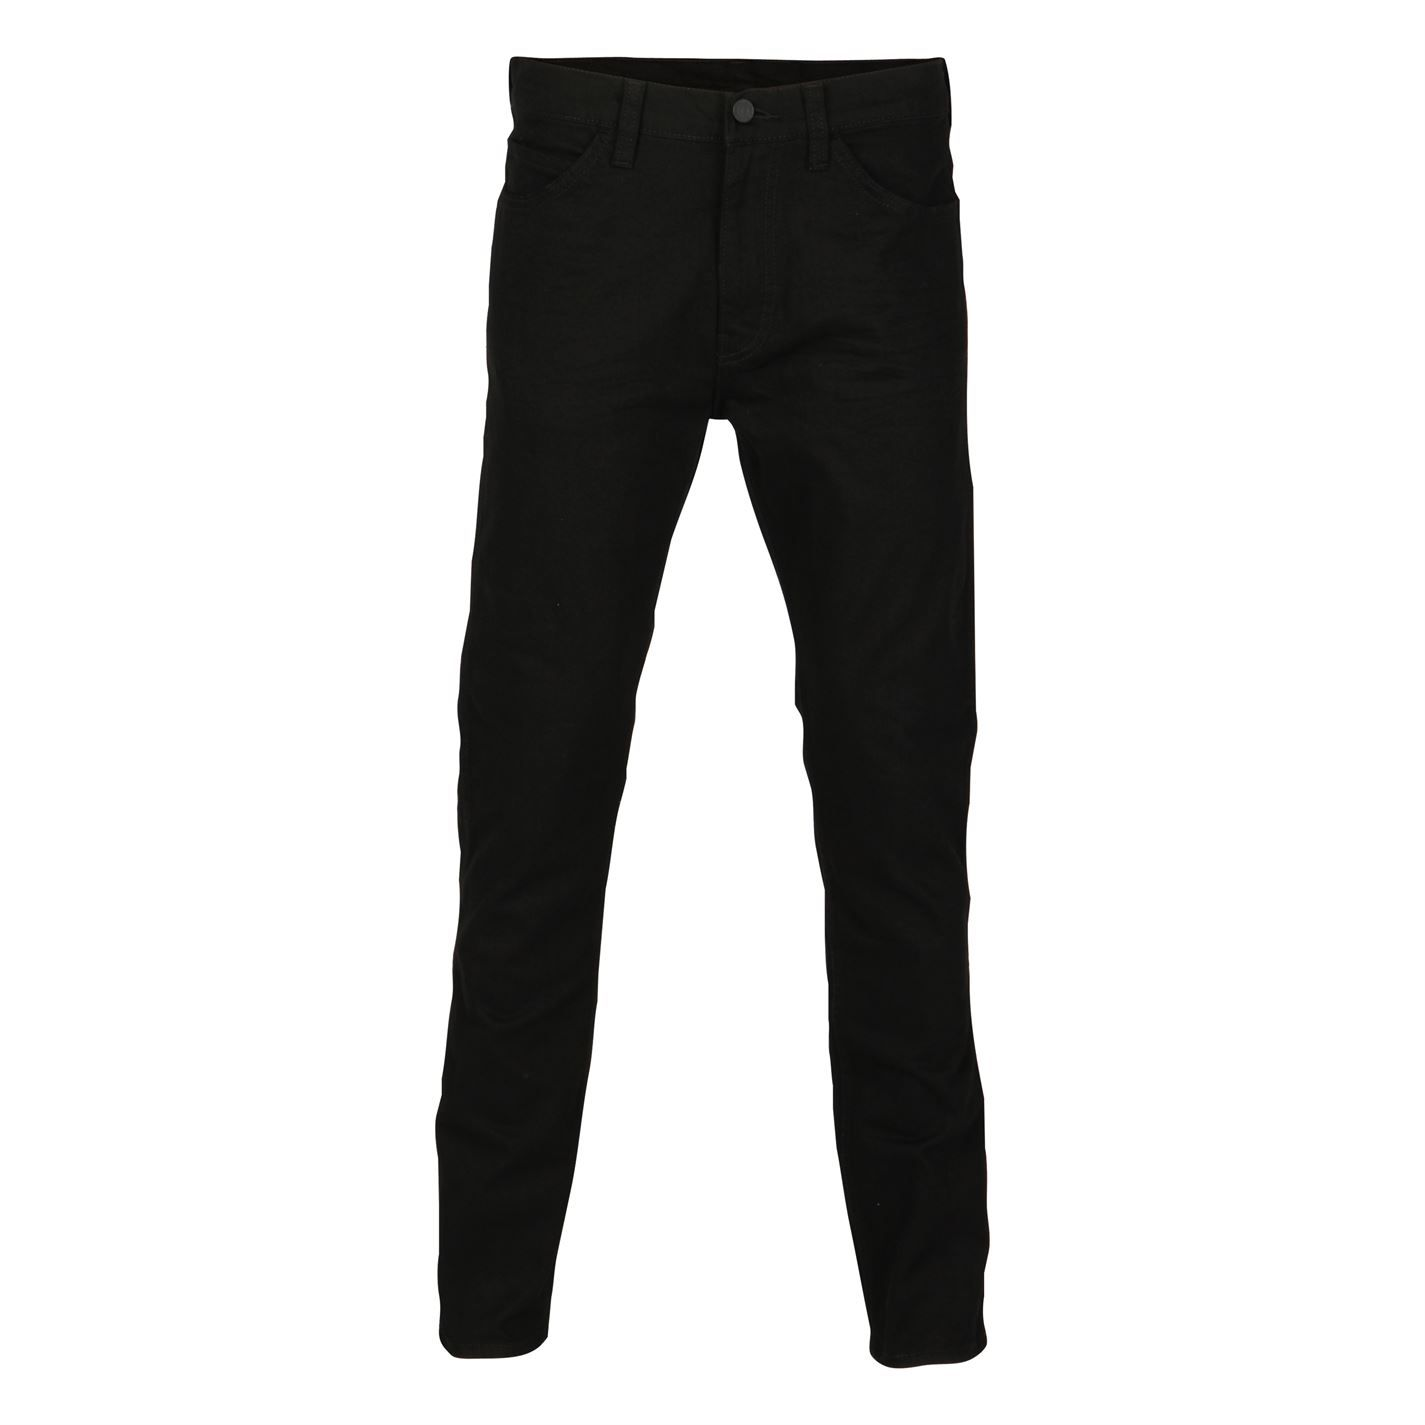 Levi 508 Black 3D Tapered Mens Jeans #FOREVERSPORTS #getthelook ...